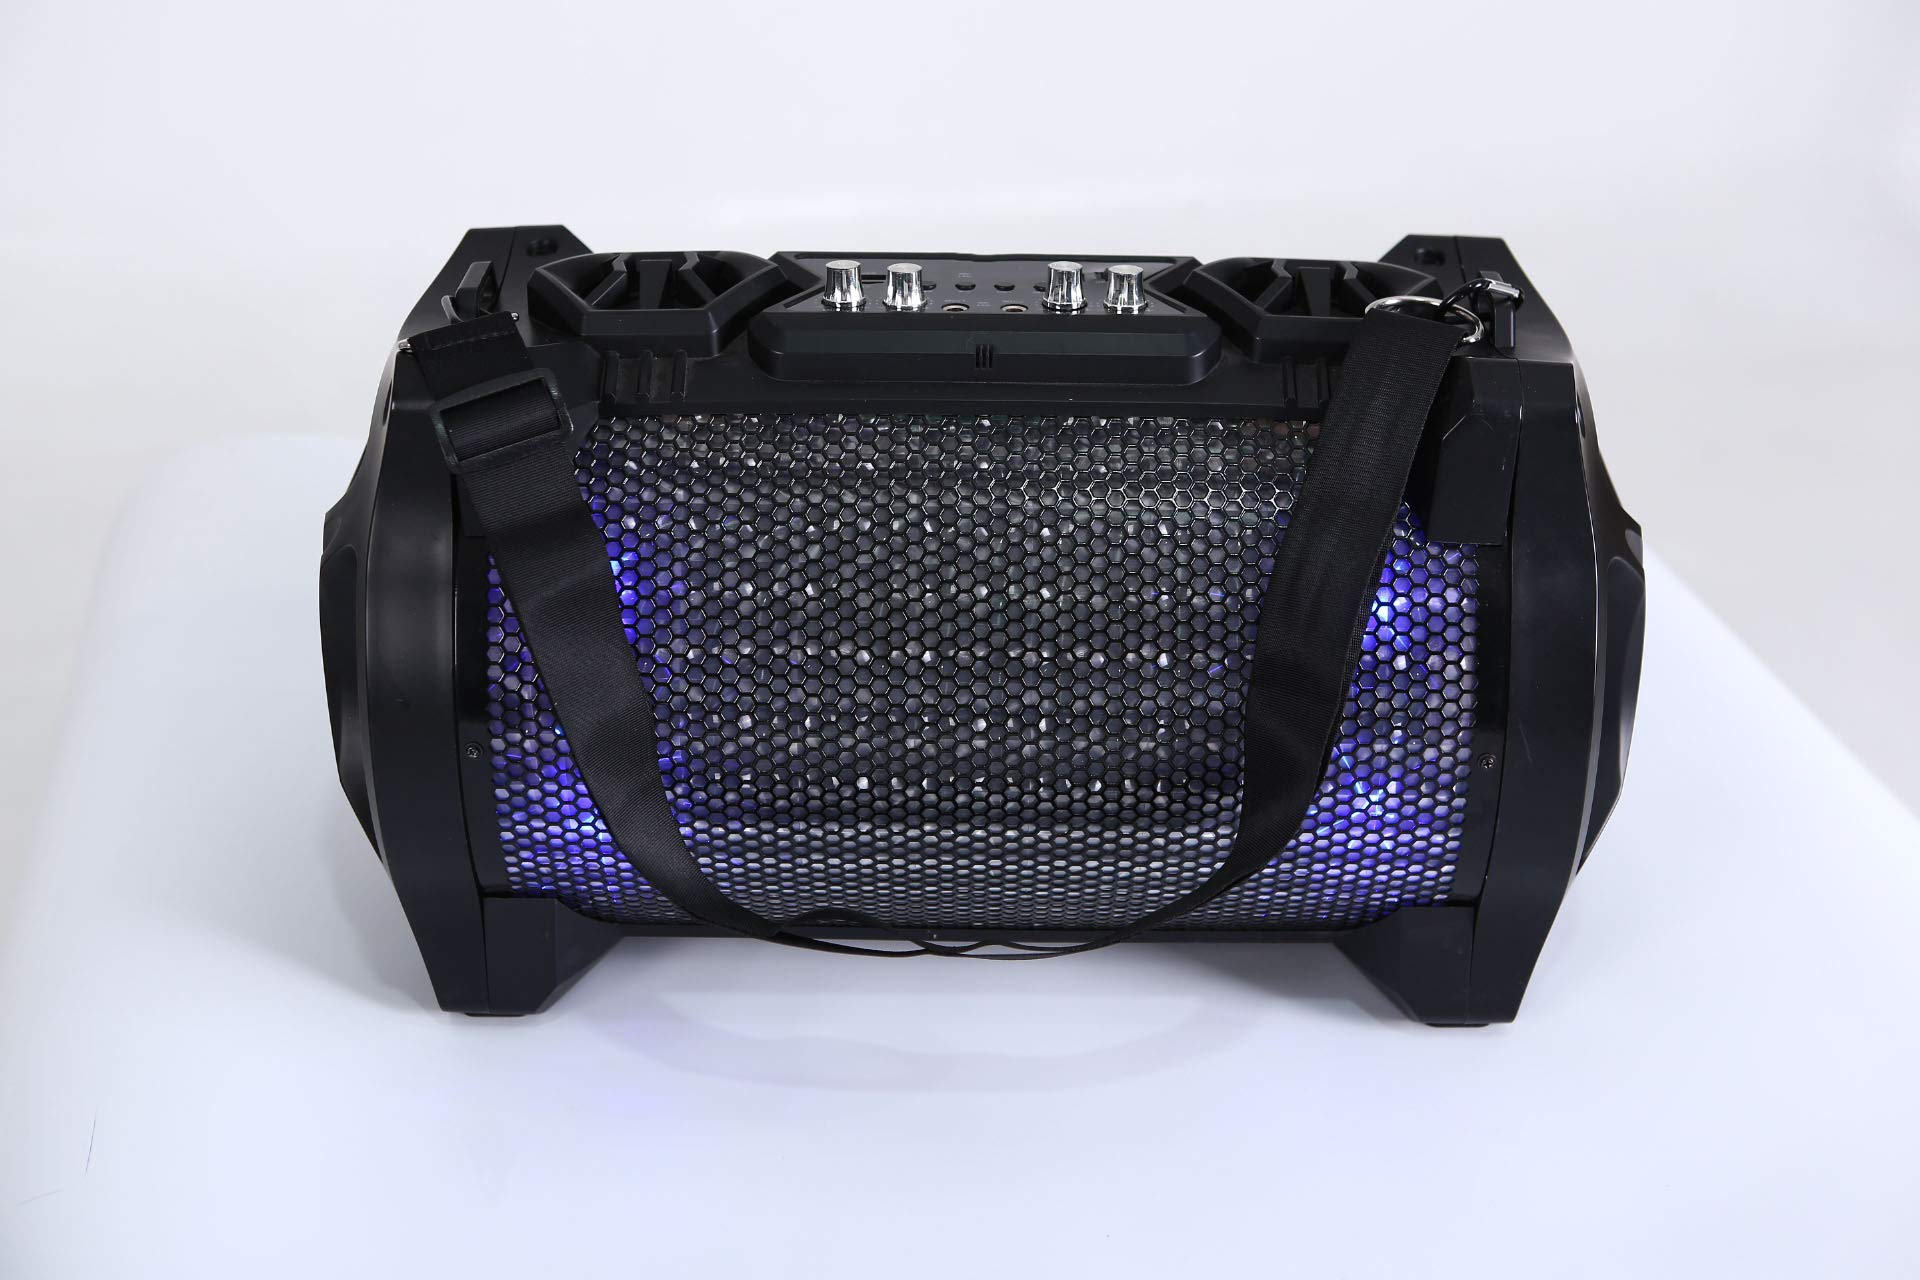 xingganglengyin Bluetooth Speaker 2018 New Cannon Strap with Lantern Smart Audio Outdoor Hip Hop Mobile Wireless Subwoofer by xingganglengyin (Image #6)